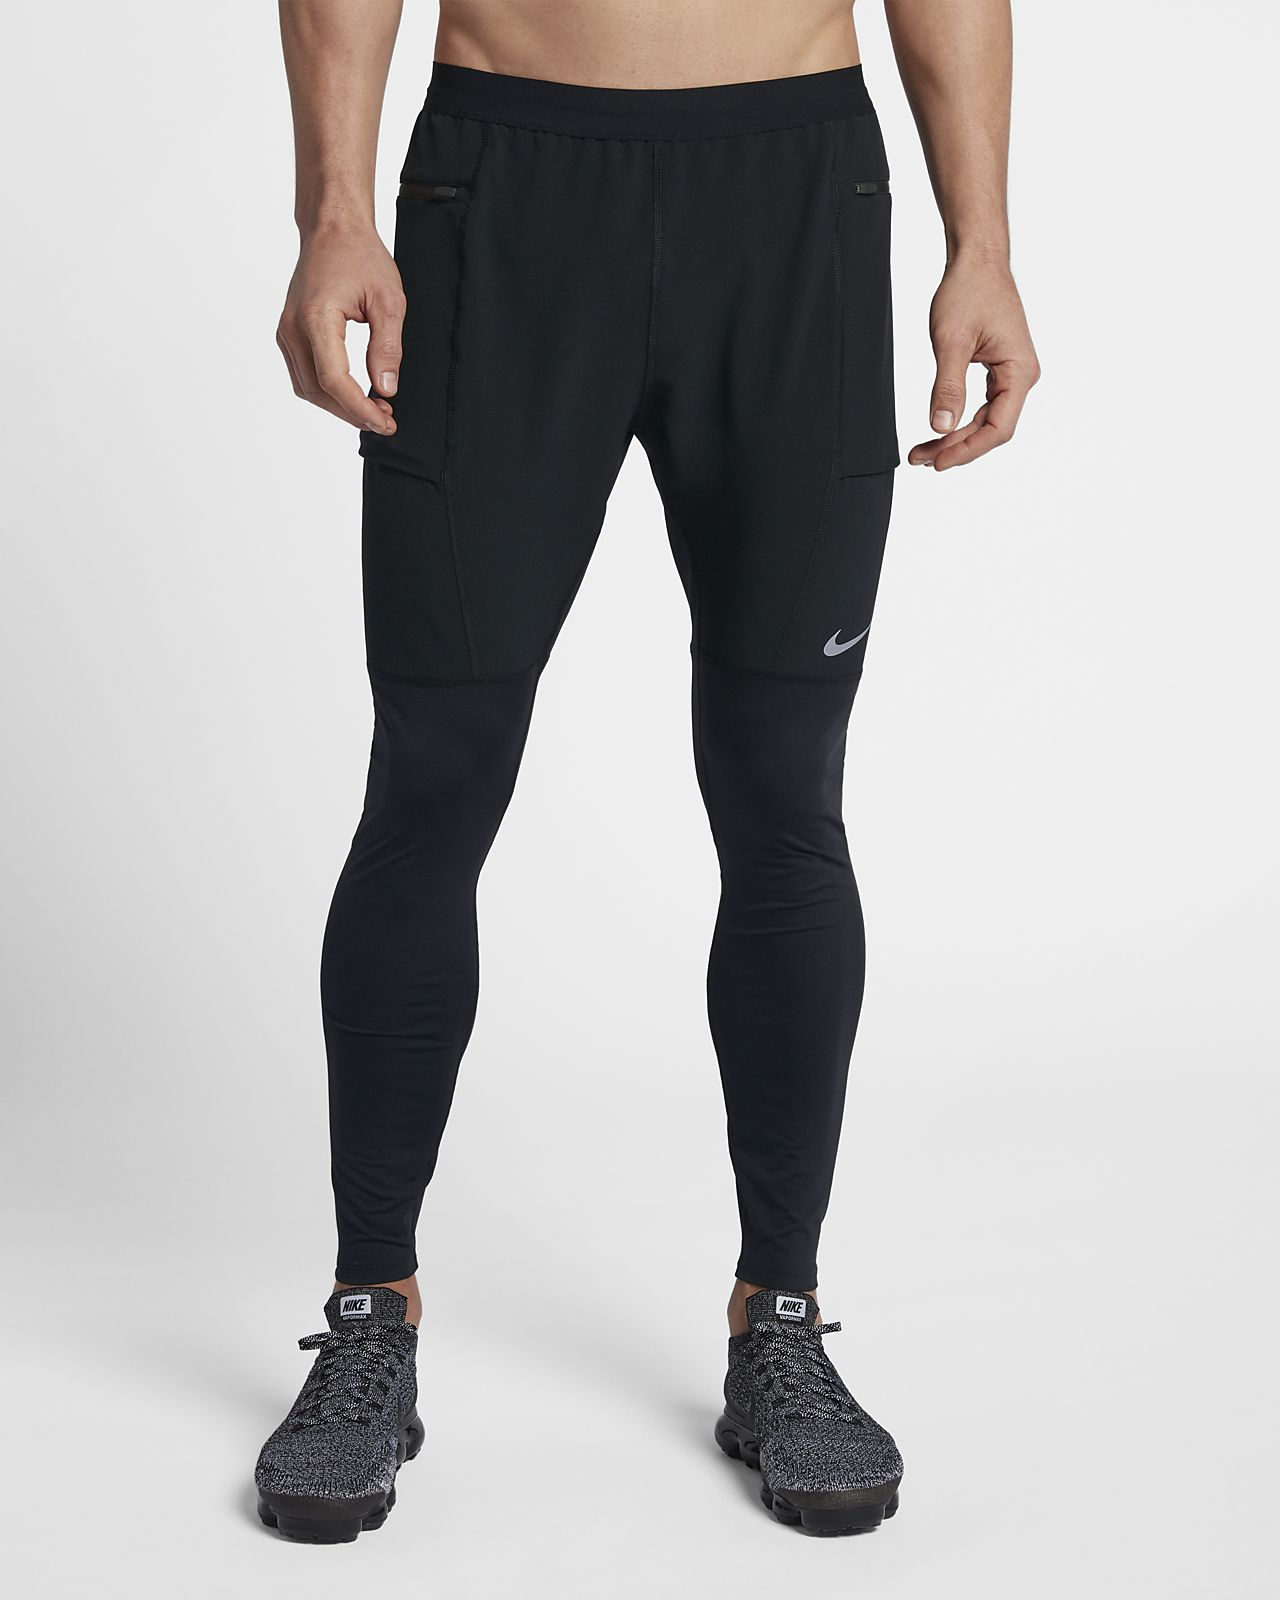 ... Nike Utility Men's Running Pants